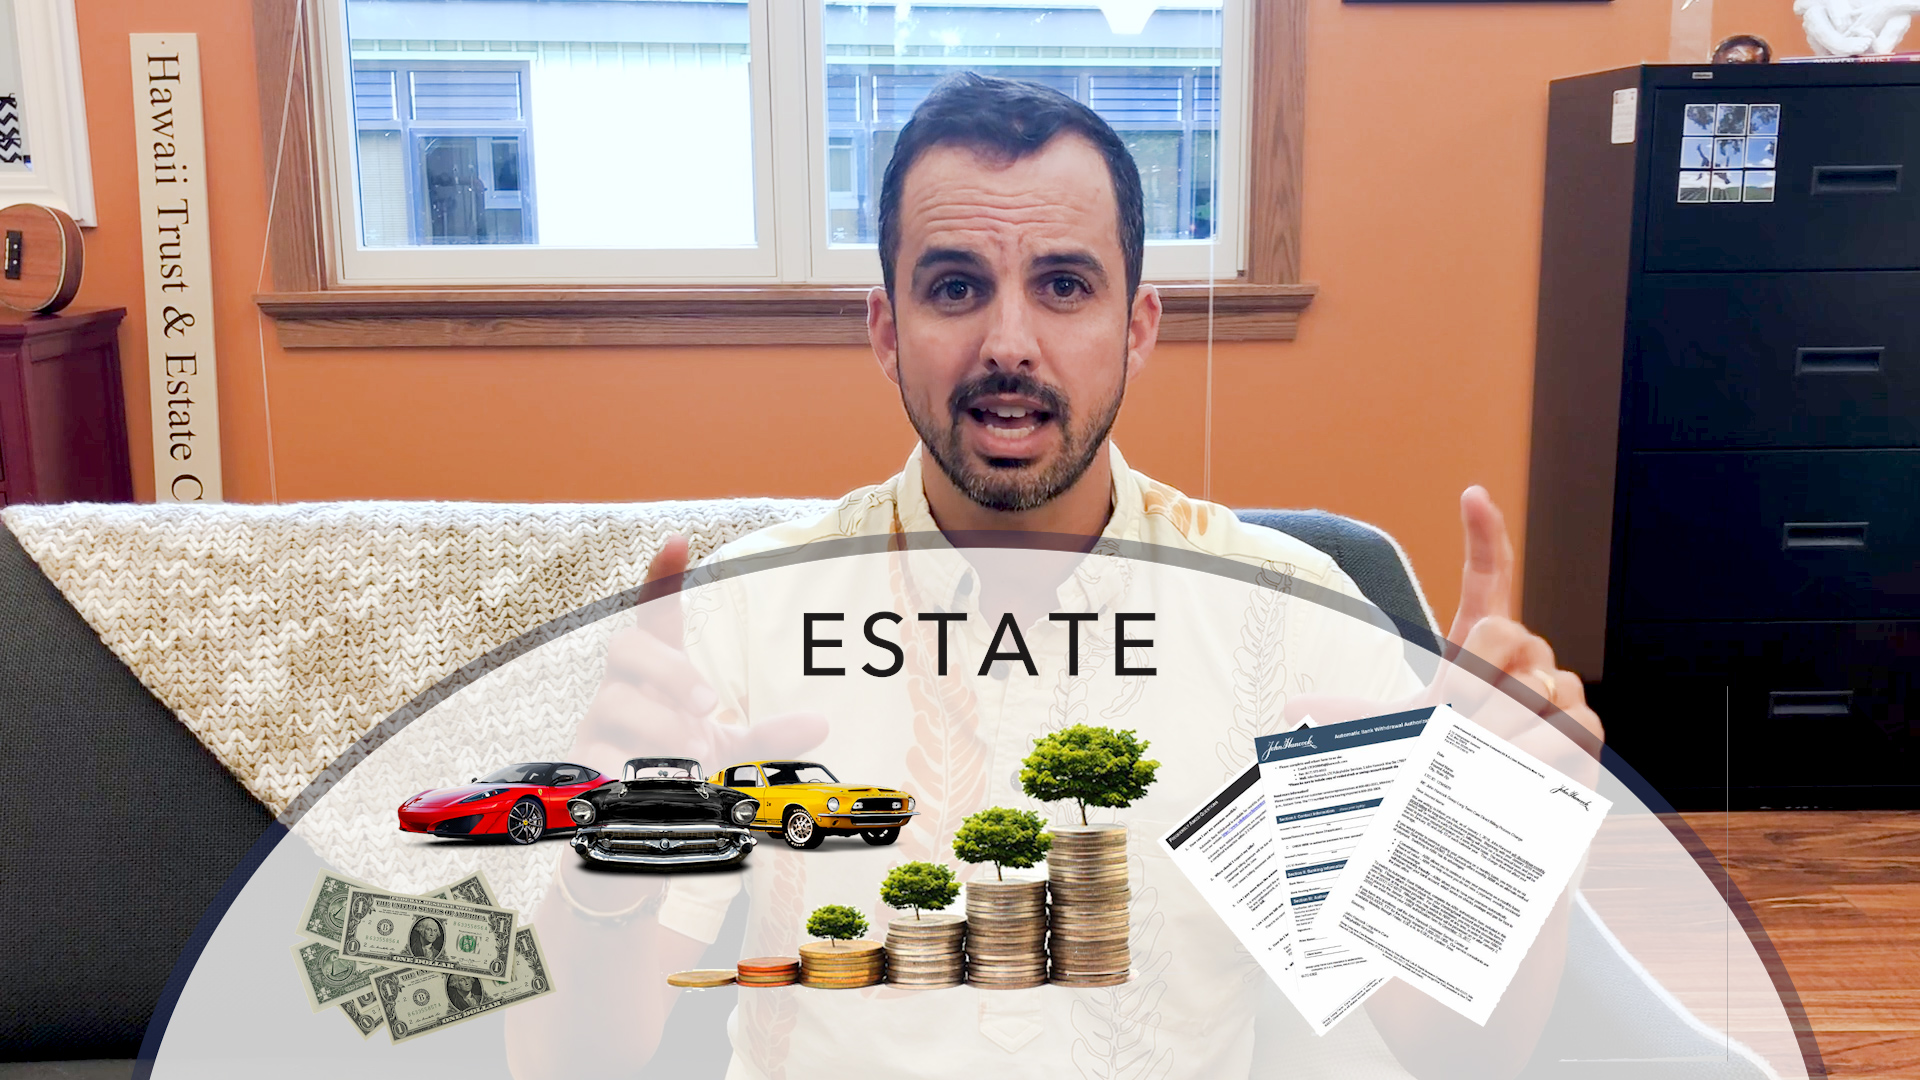 What is an estate?